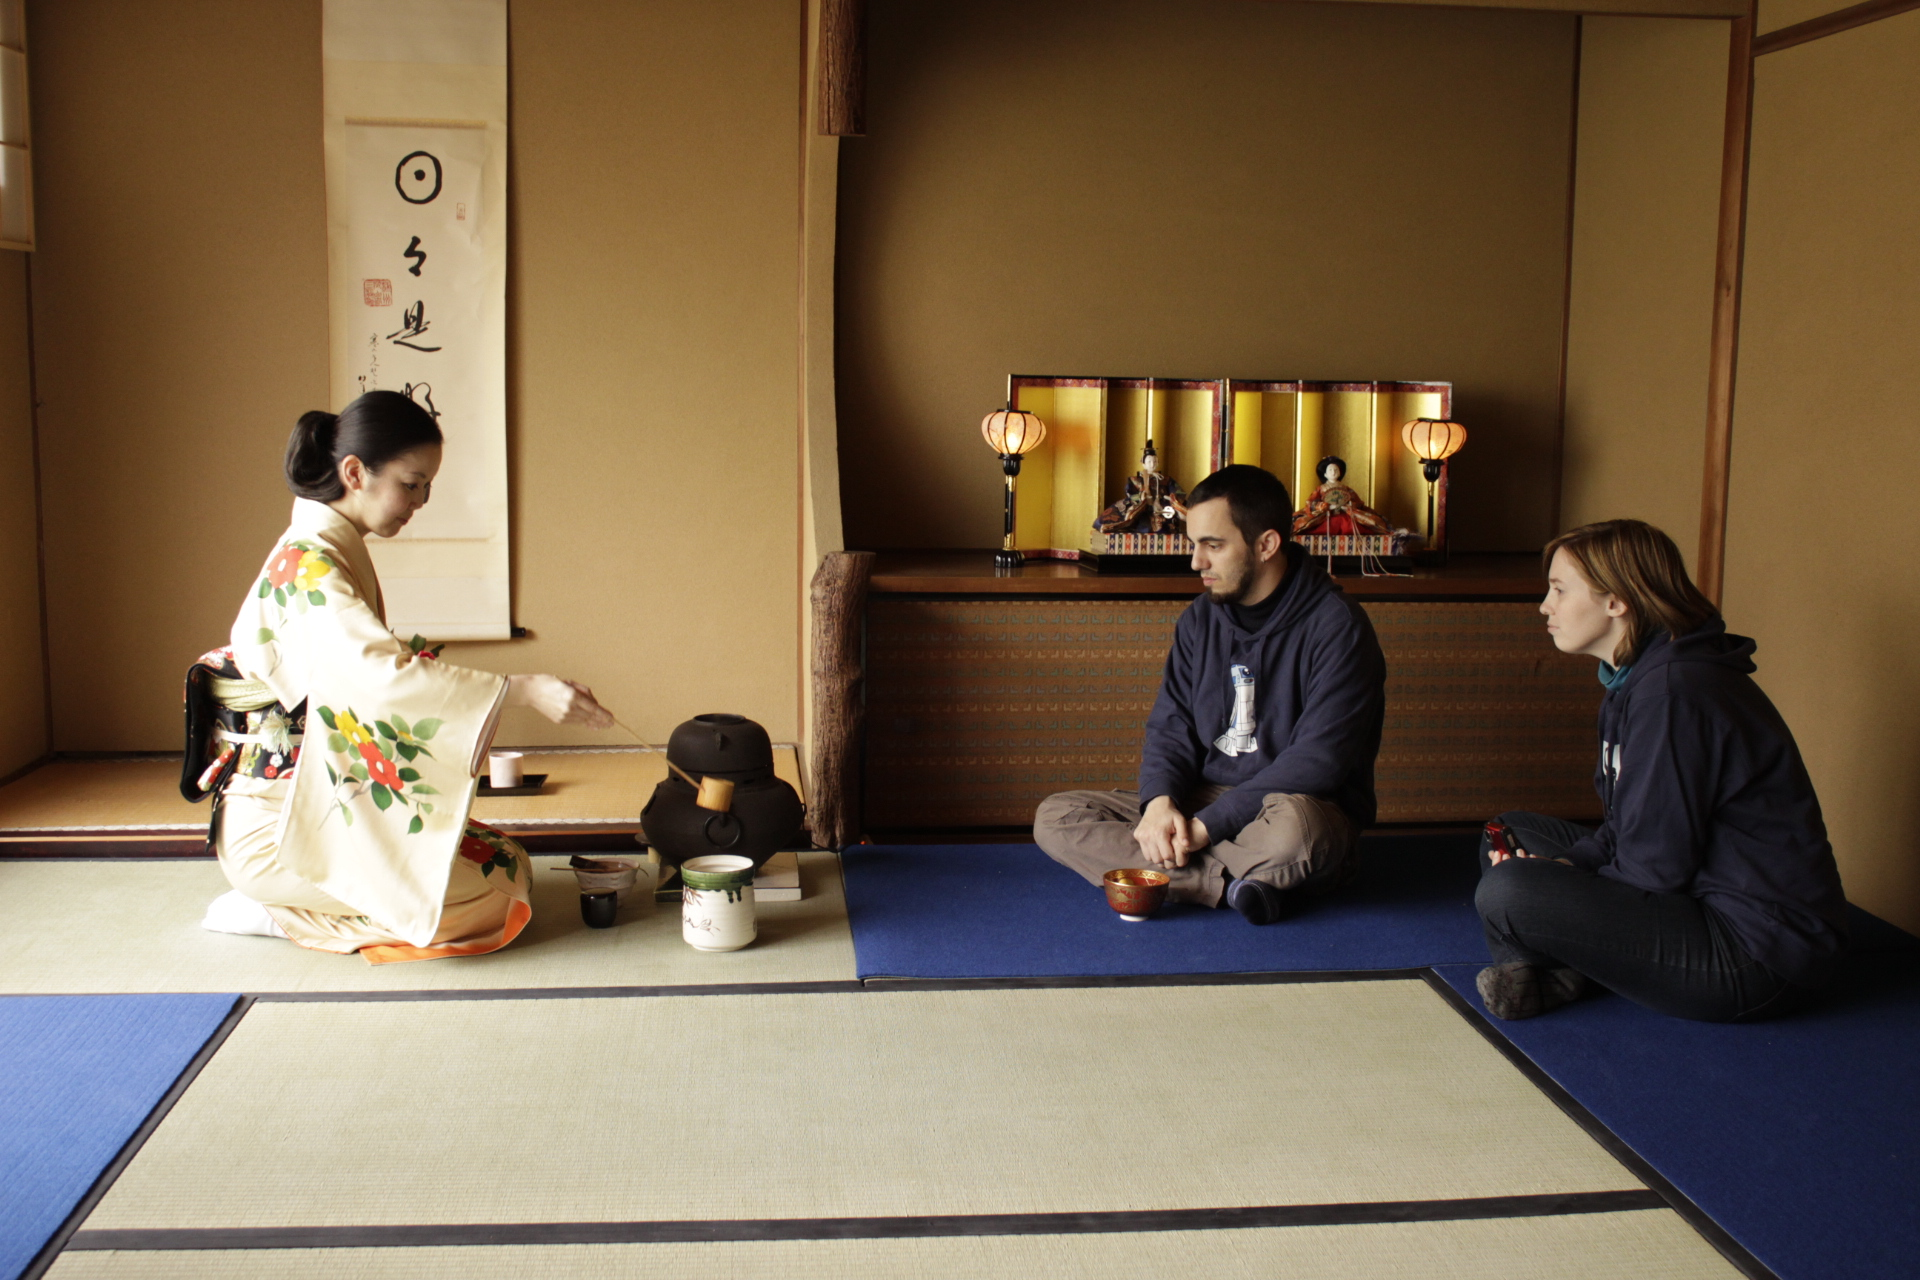 Watch an authentic tea ceremony performance in Camellia FLOWER'S tearoom.